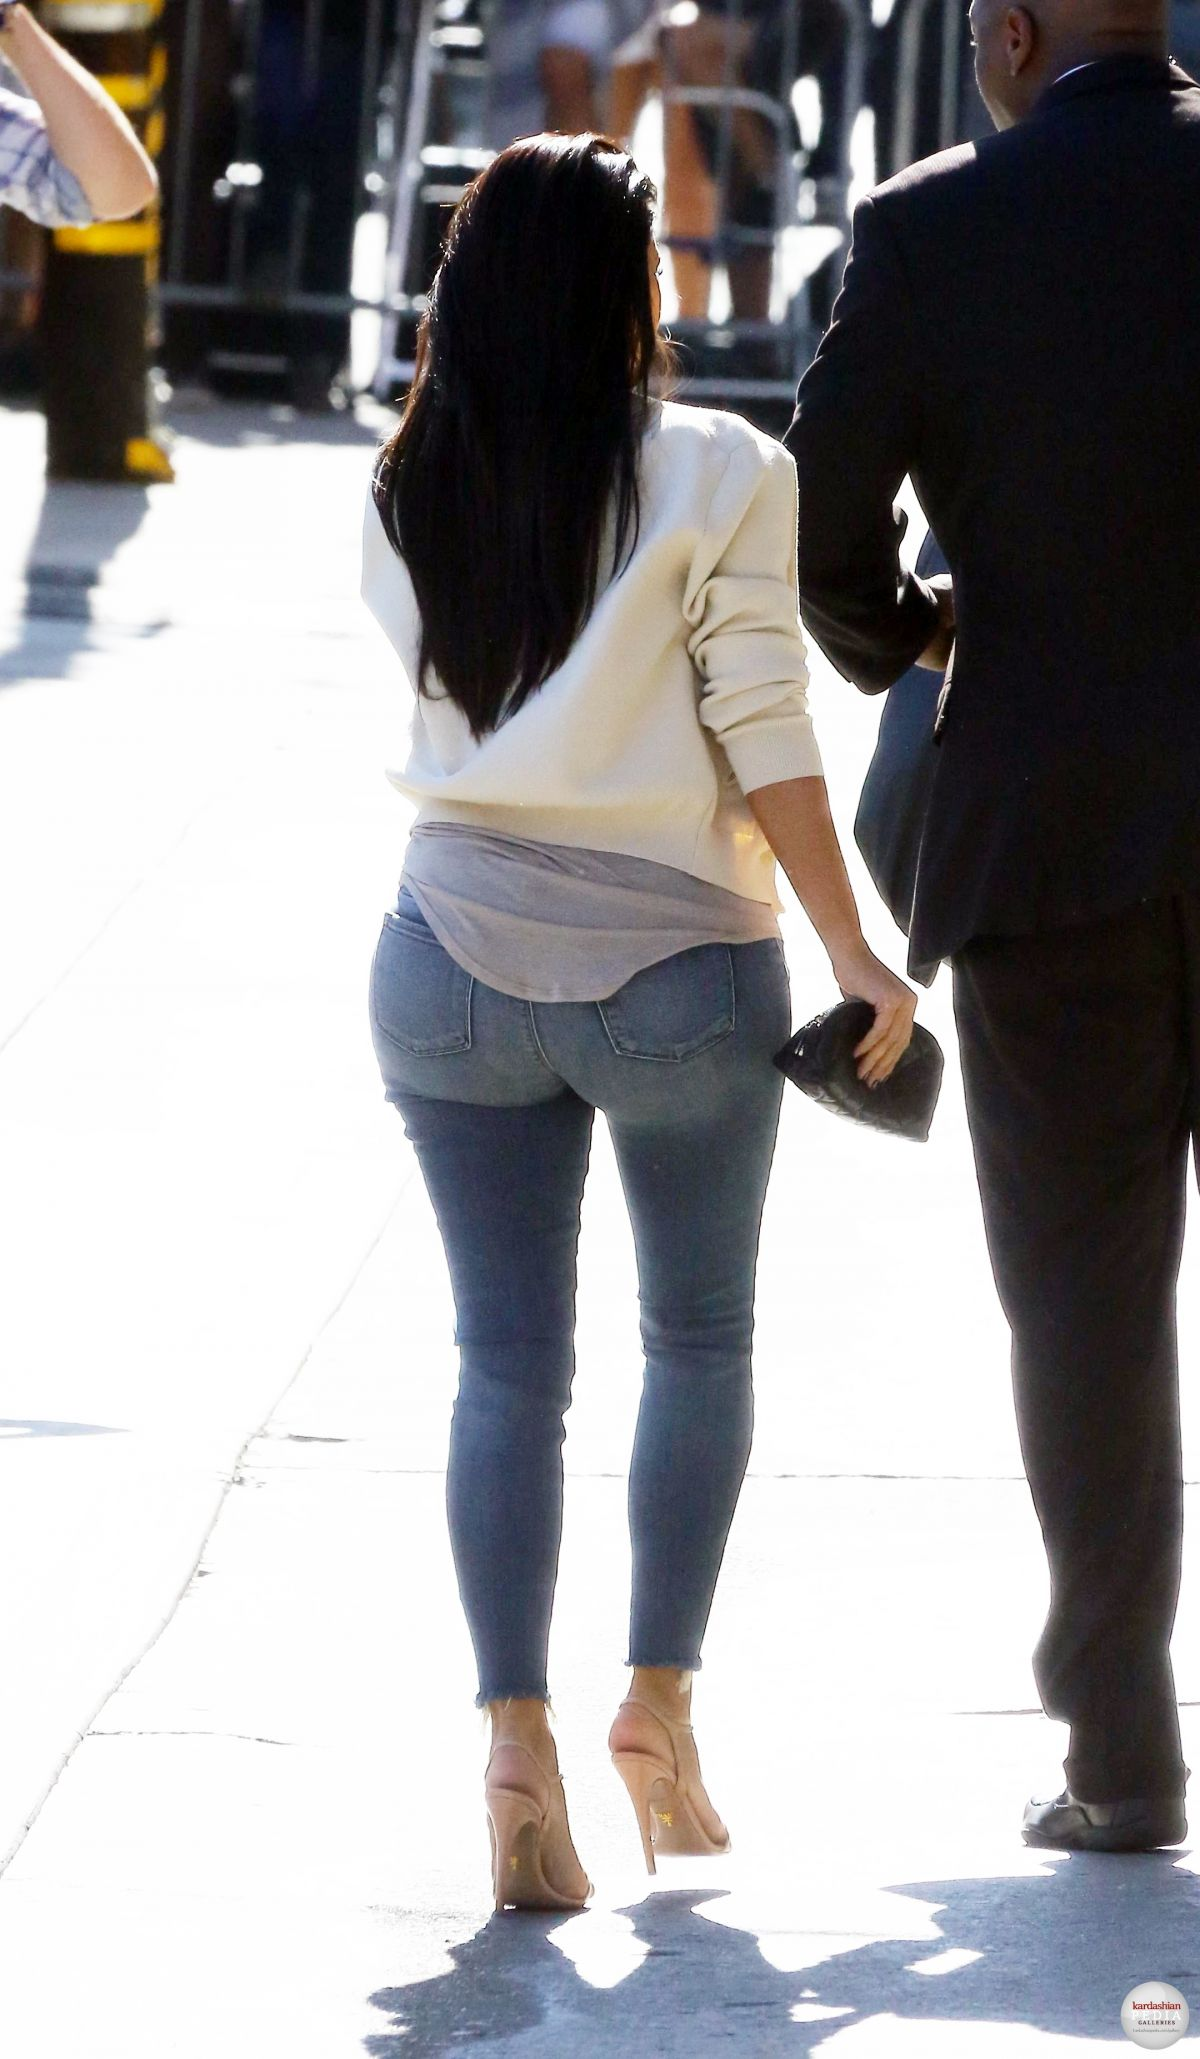 Kim Kardashian Ass In Tight Jeans KIM KARDASHIAN ...